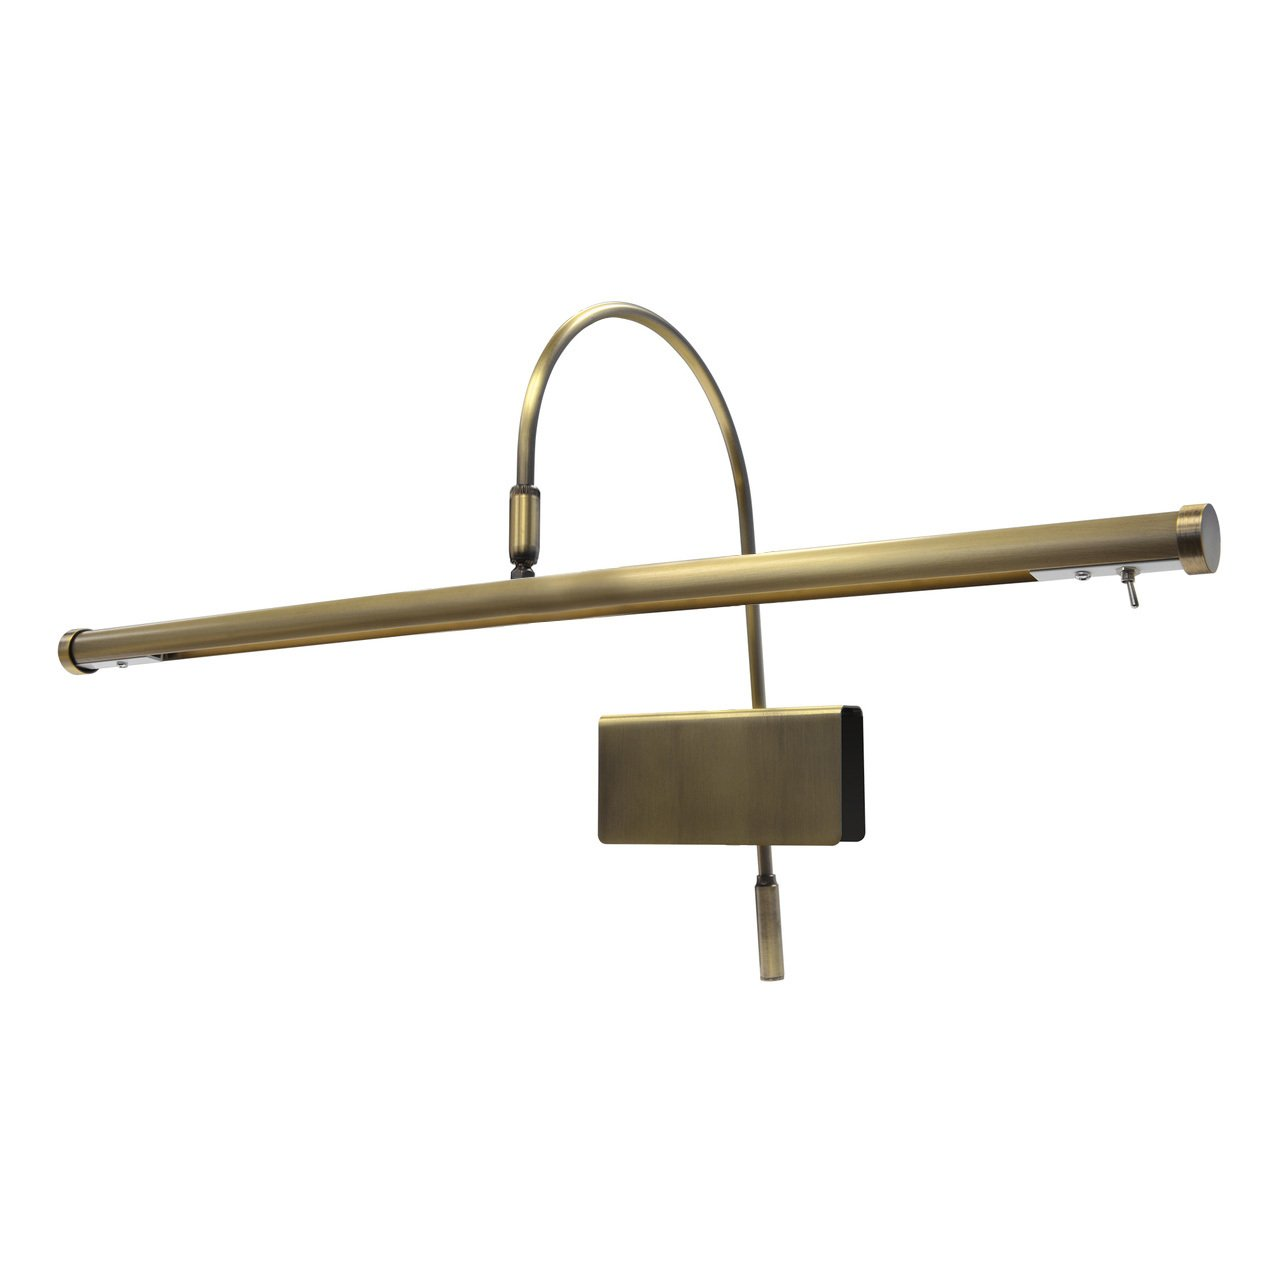 Cocoweb 19'' Adjustable Black with Brass Accents LED Clip-on Piano Lamp with Dimmer - GPLED19D (Antique Brass)